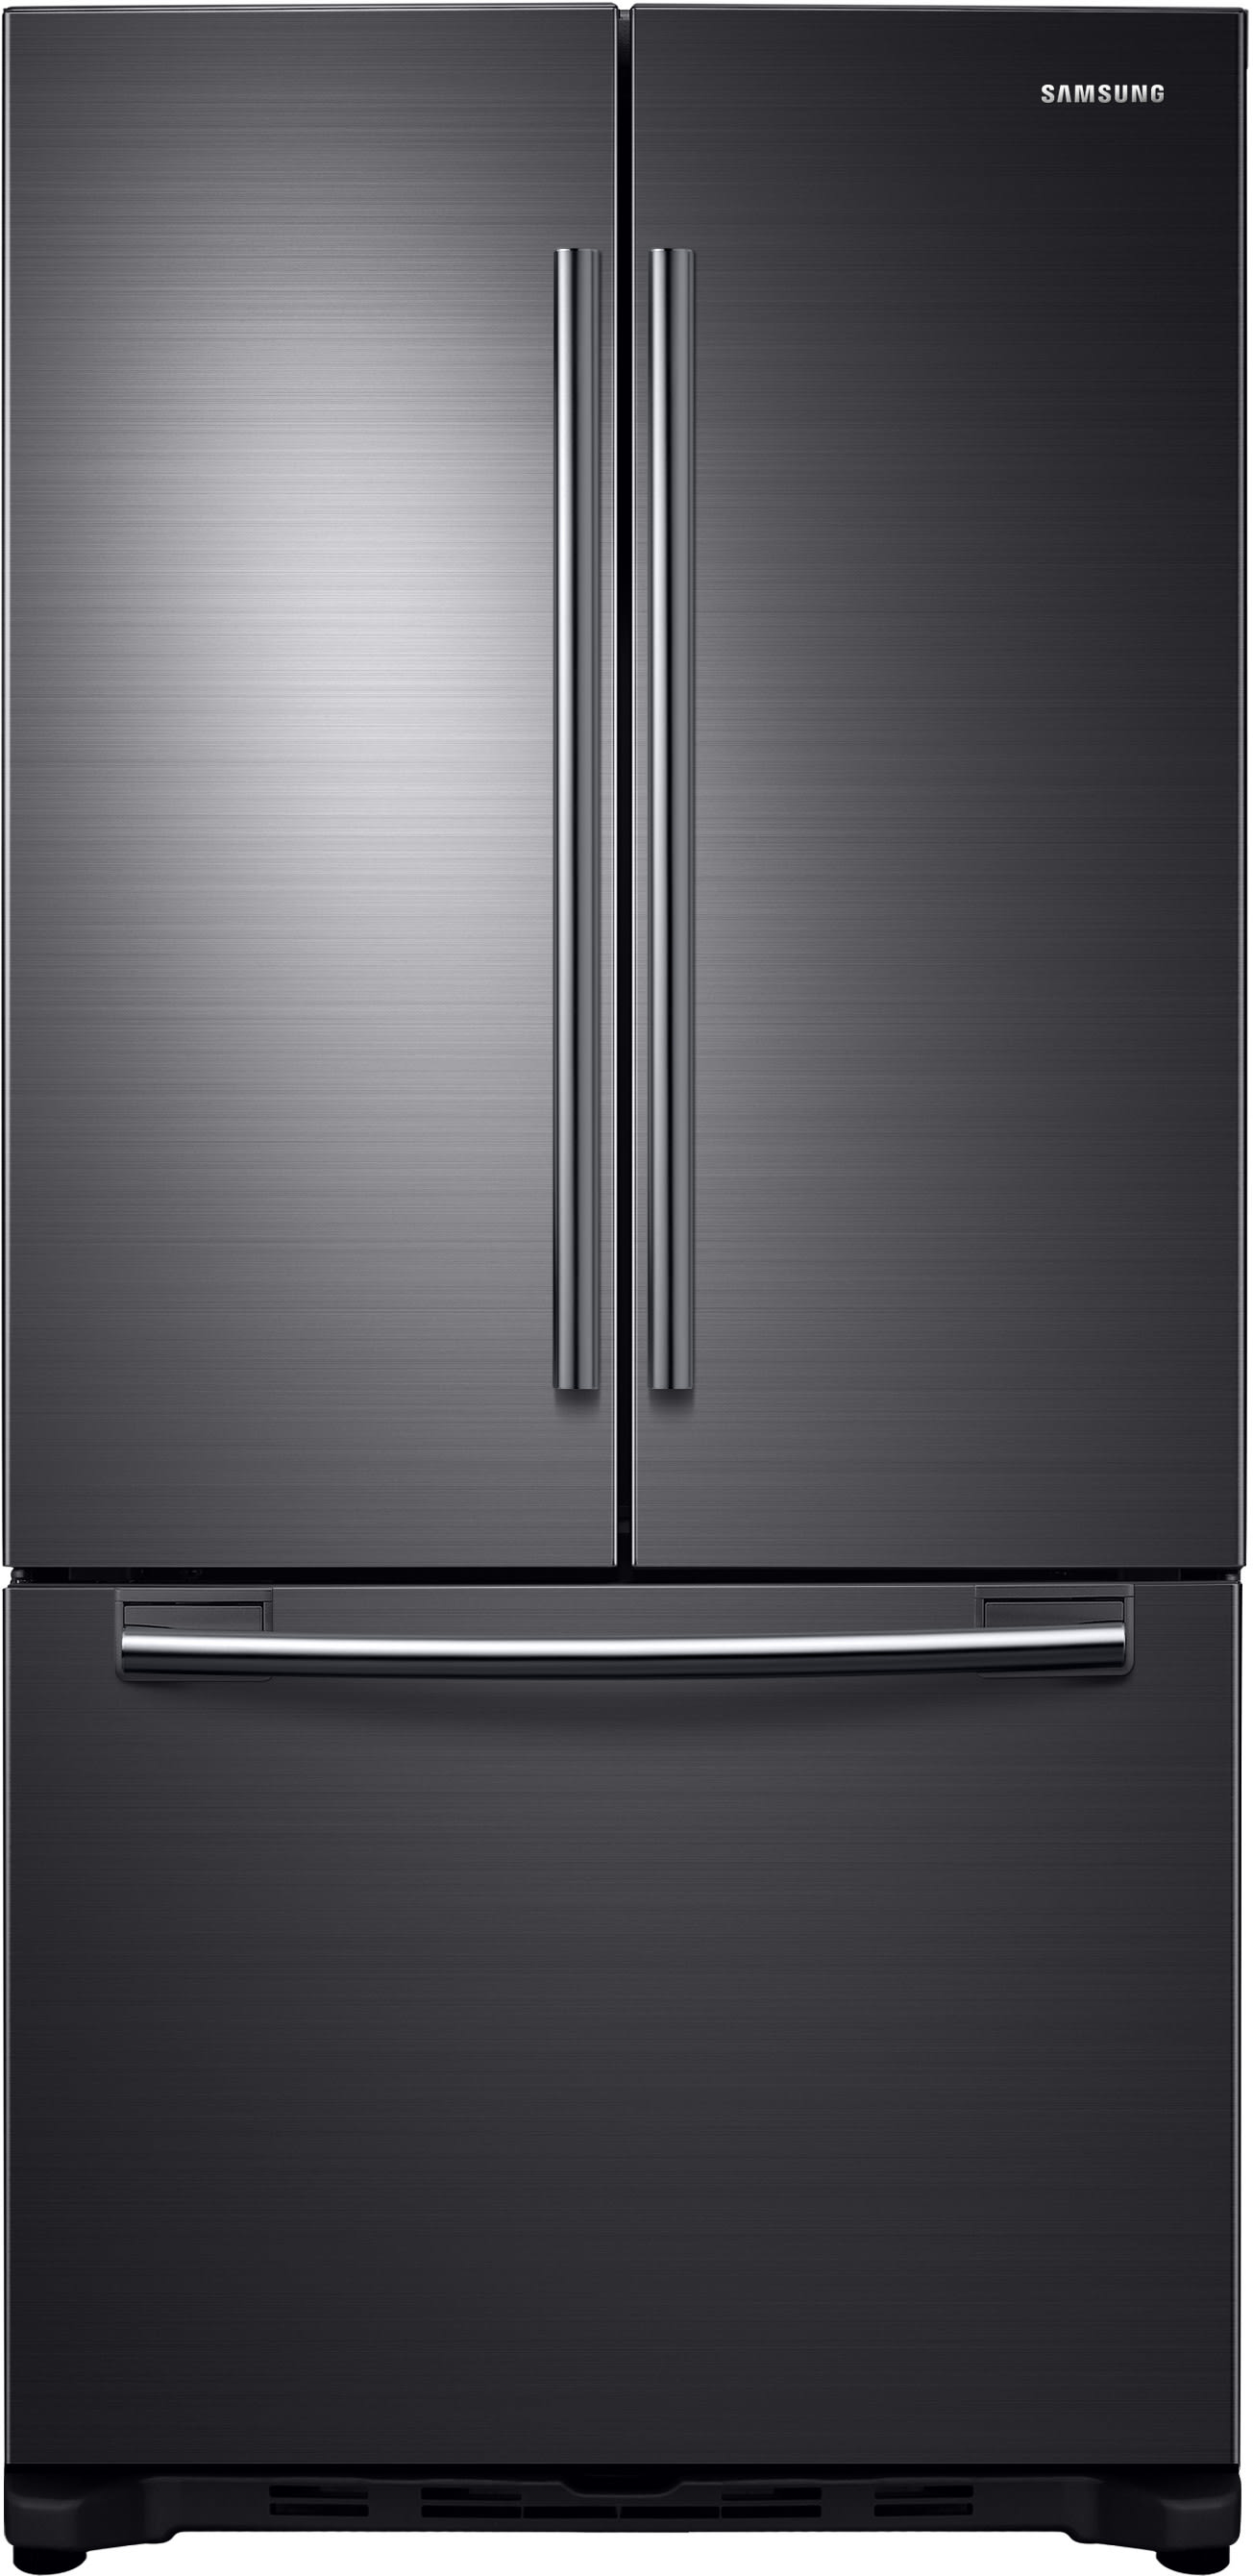 Samsung RF18HFENBSG 33 Inch Counter Depth French Door Refrigerator With  Twin Cooling, Filtered Icemaker, Power Freeze, Power Cool, 17.5 Cu. Ft.